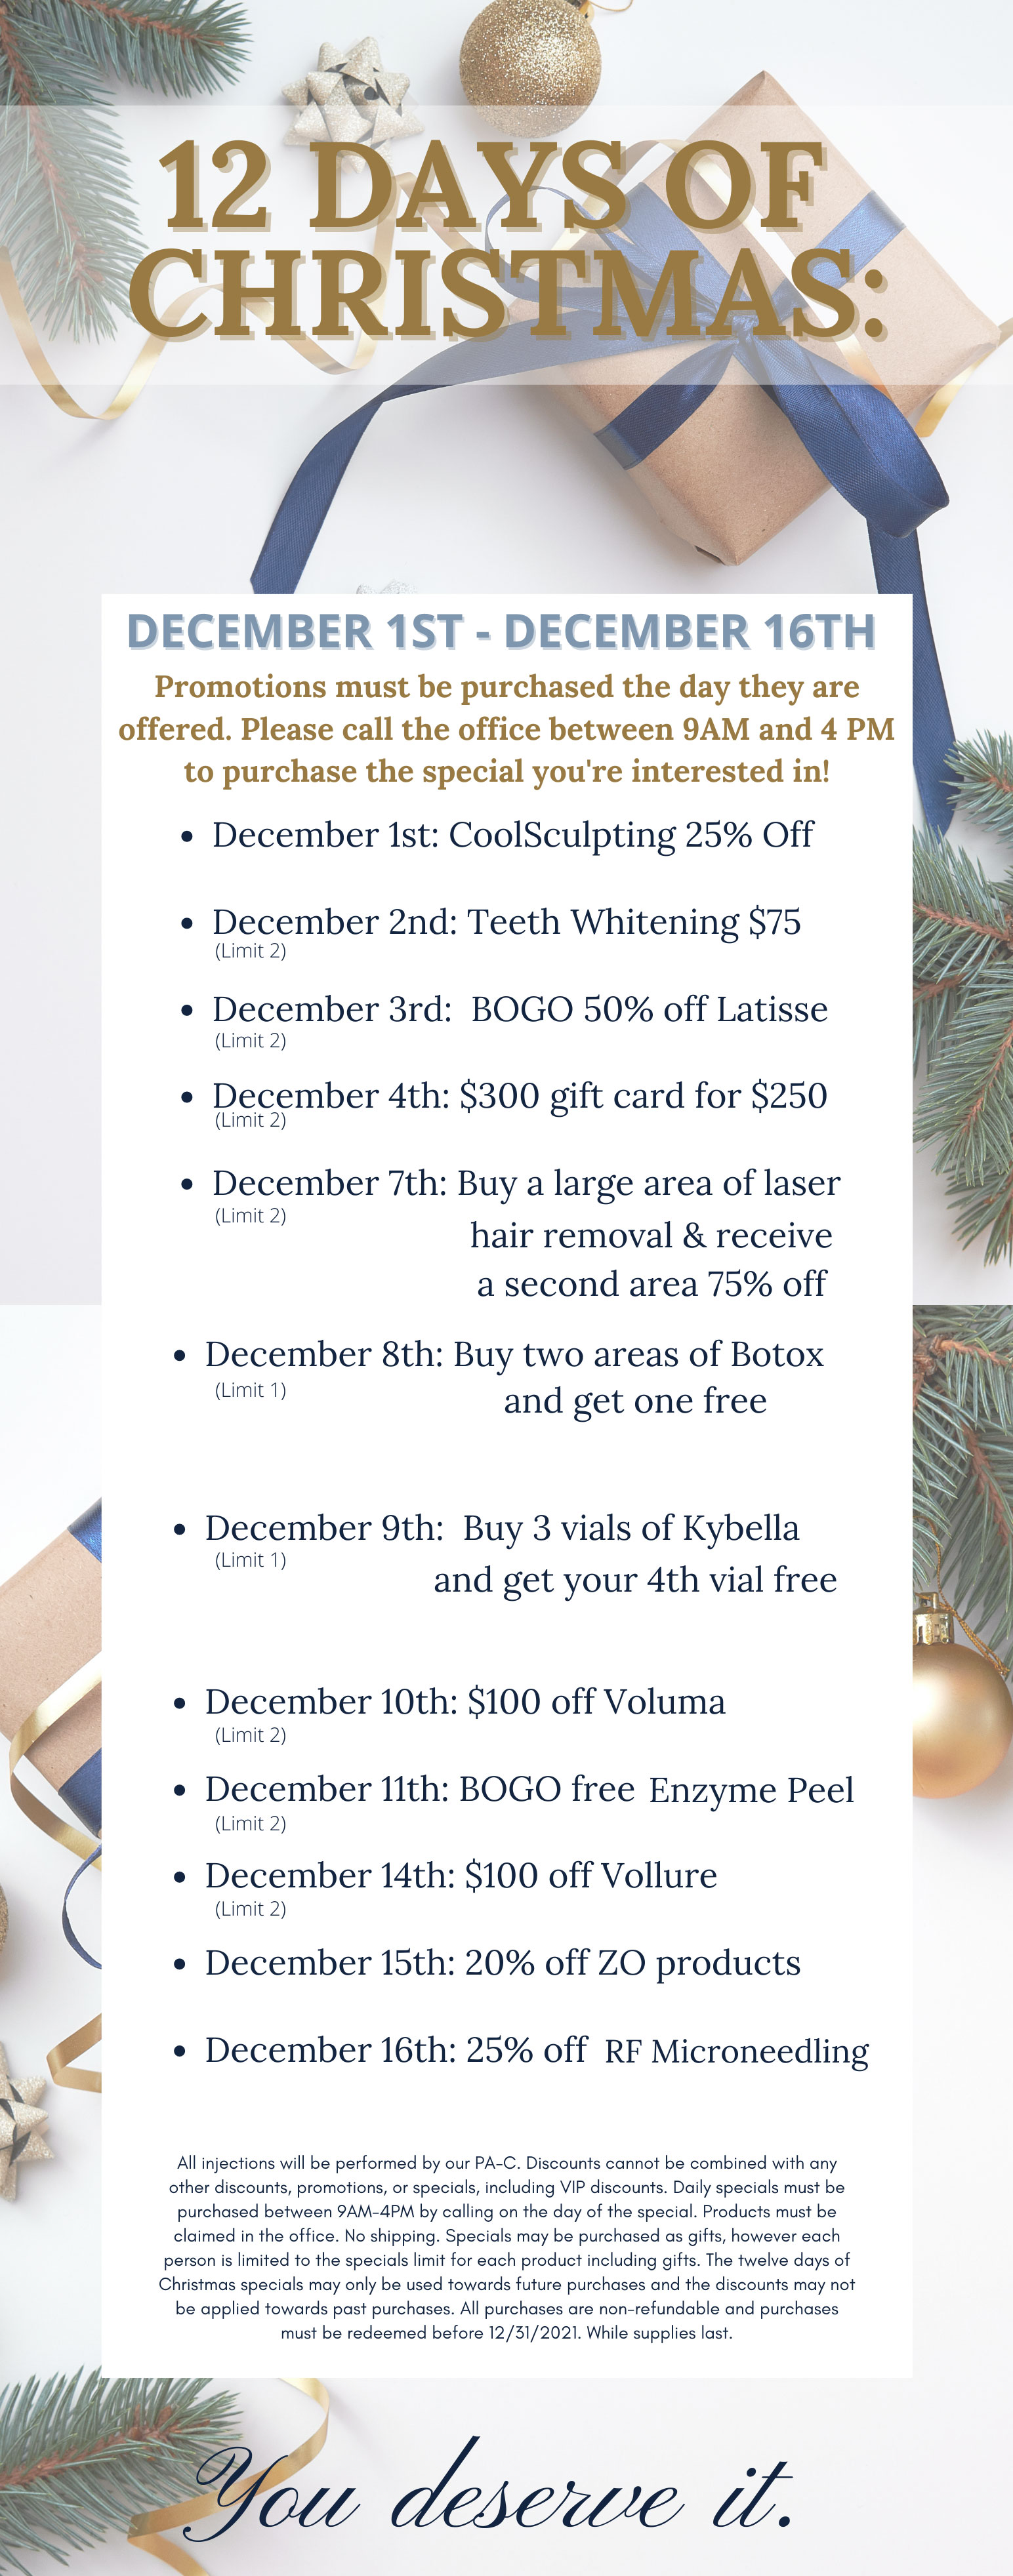 Dr. Tyrone Christmas 2020 Specials